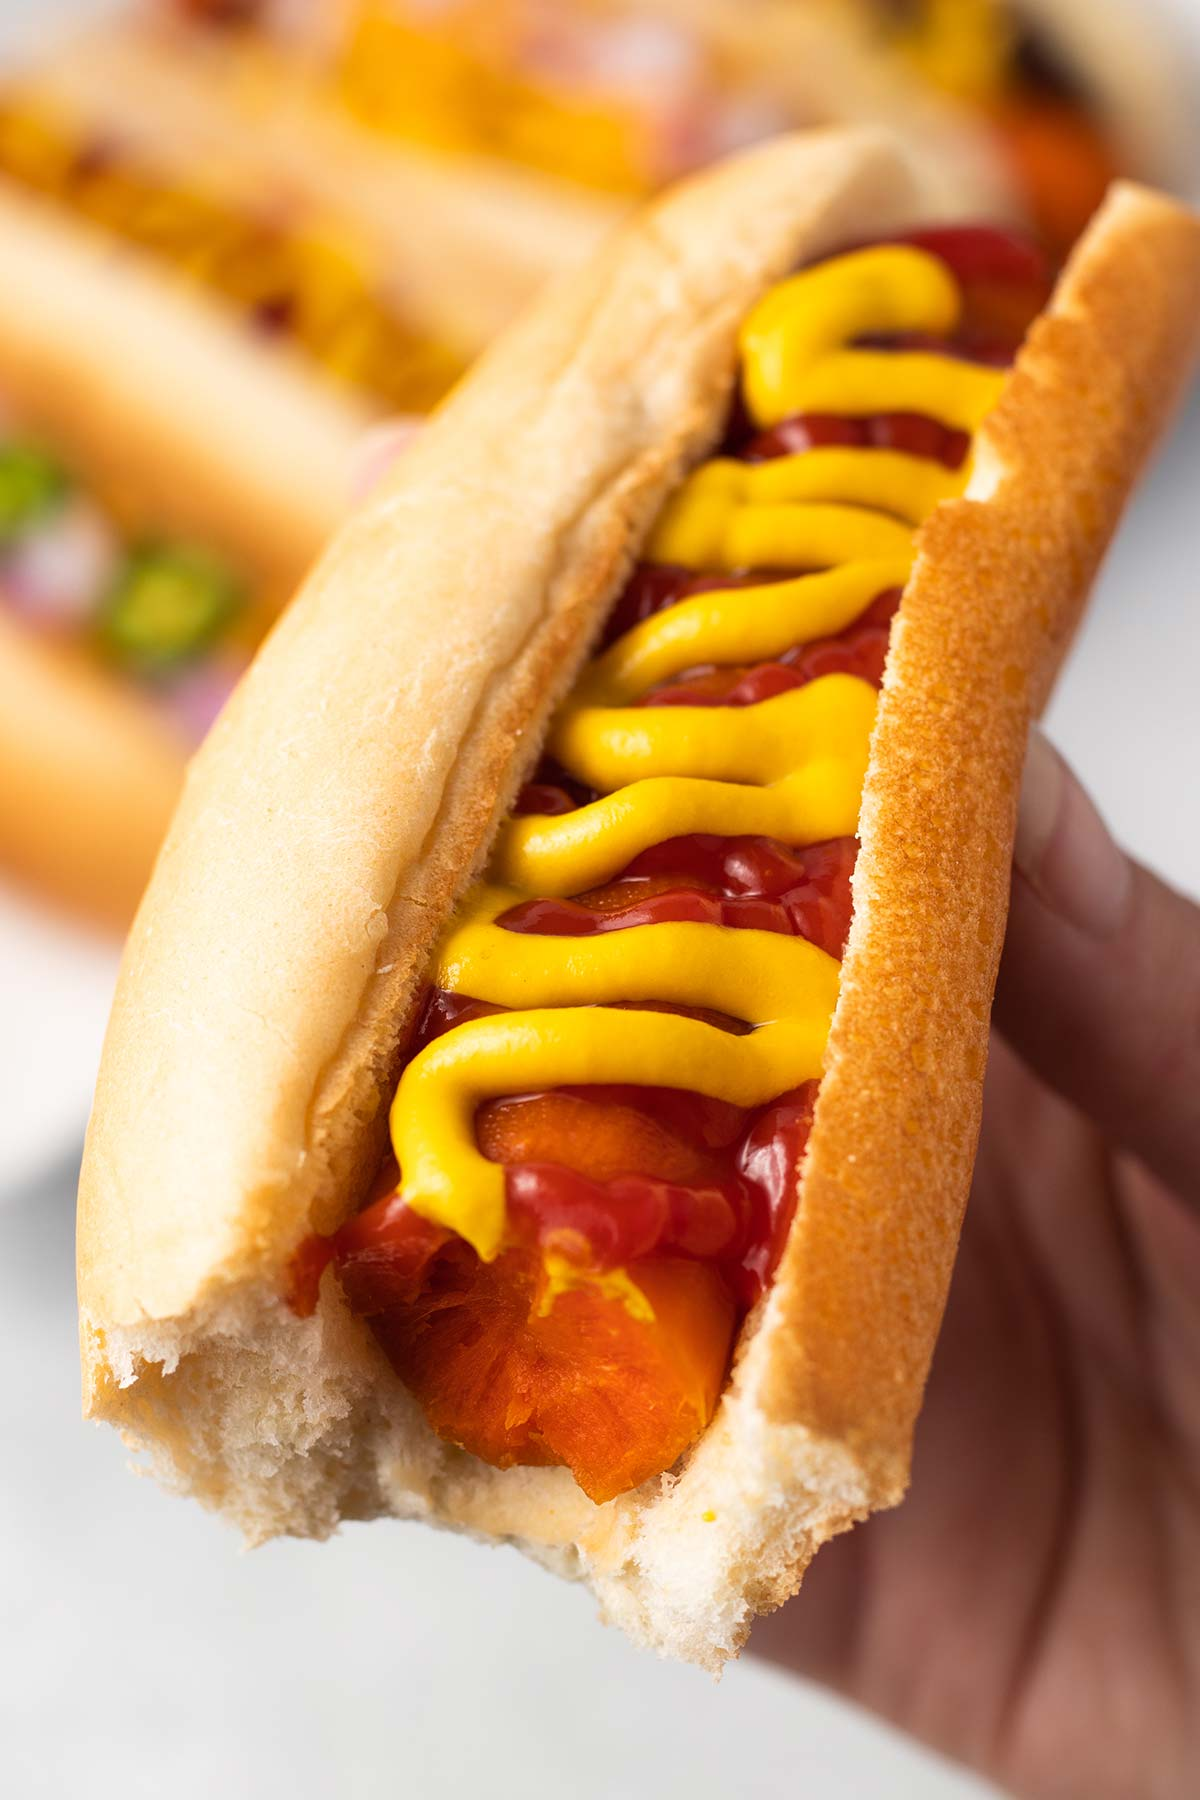 A hand holding up a carrot dog with a bite taken out. It's topped with a zig zag of ketchup and mustard.